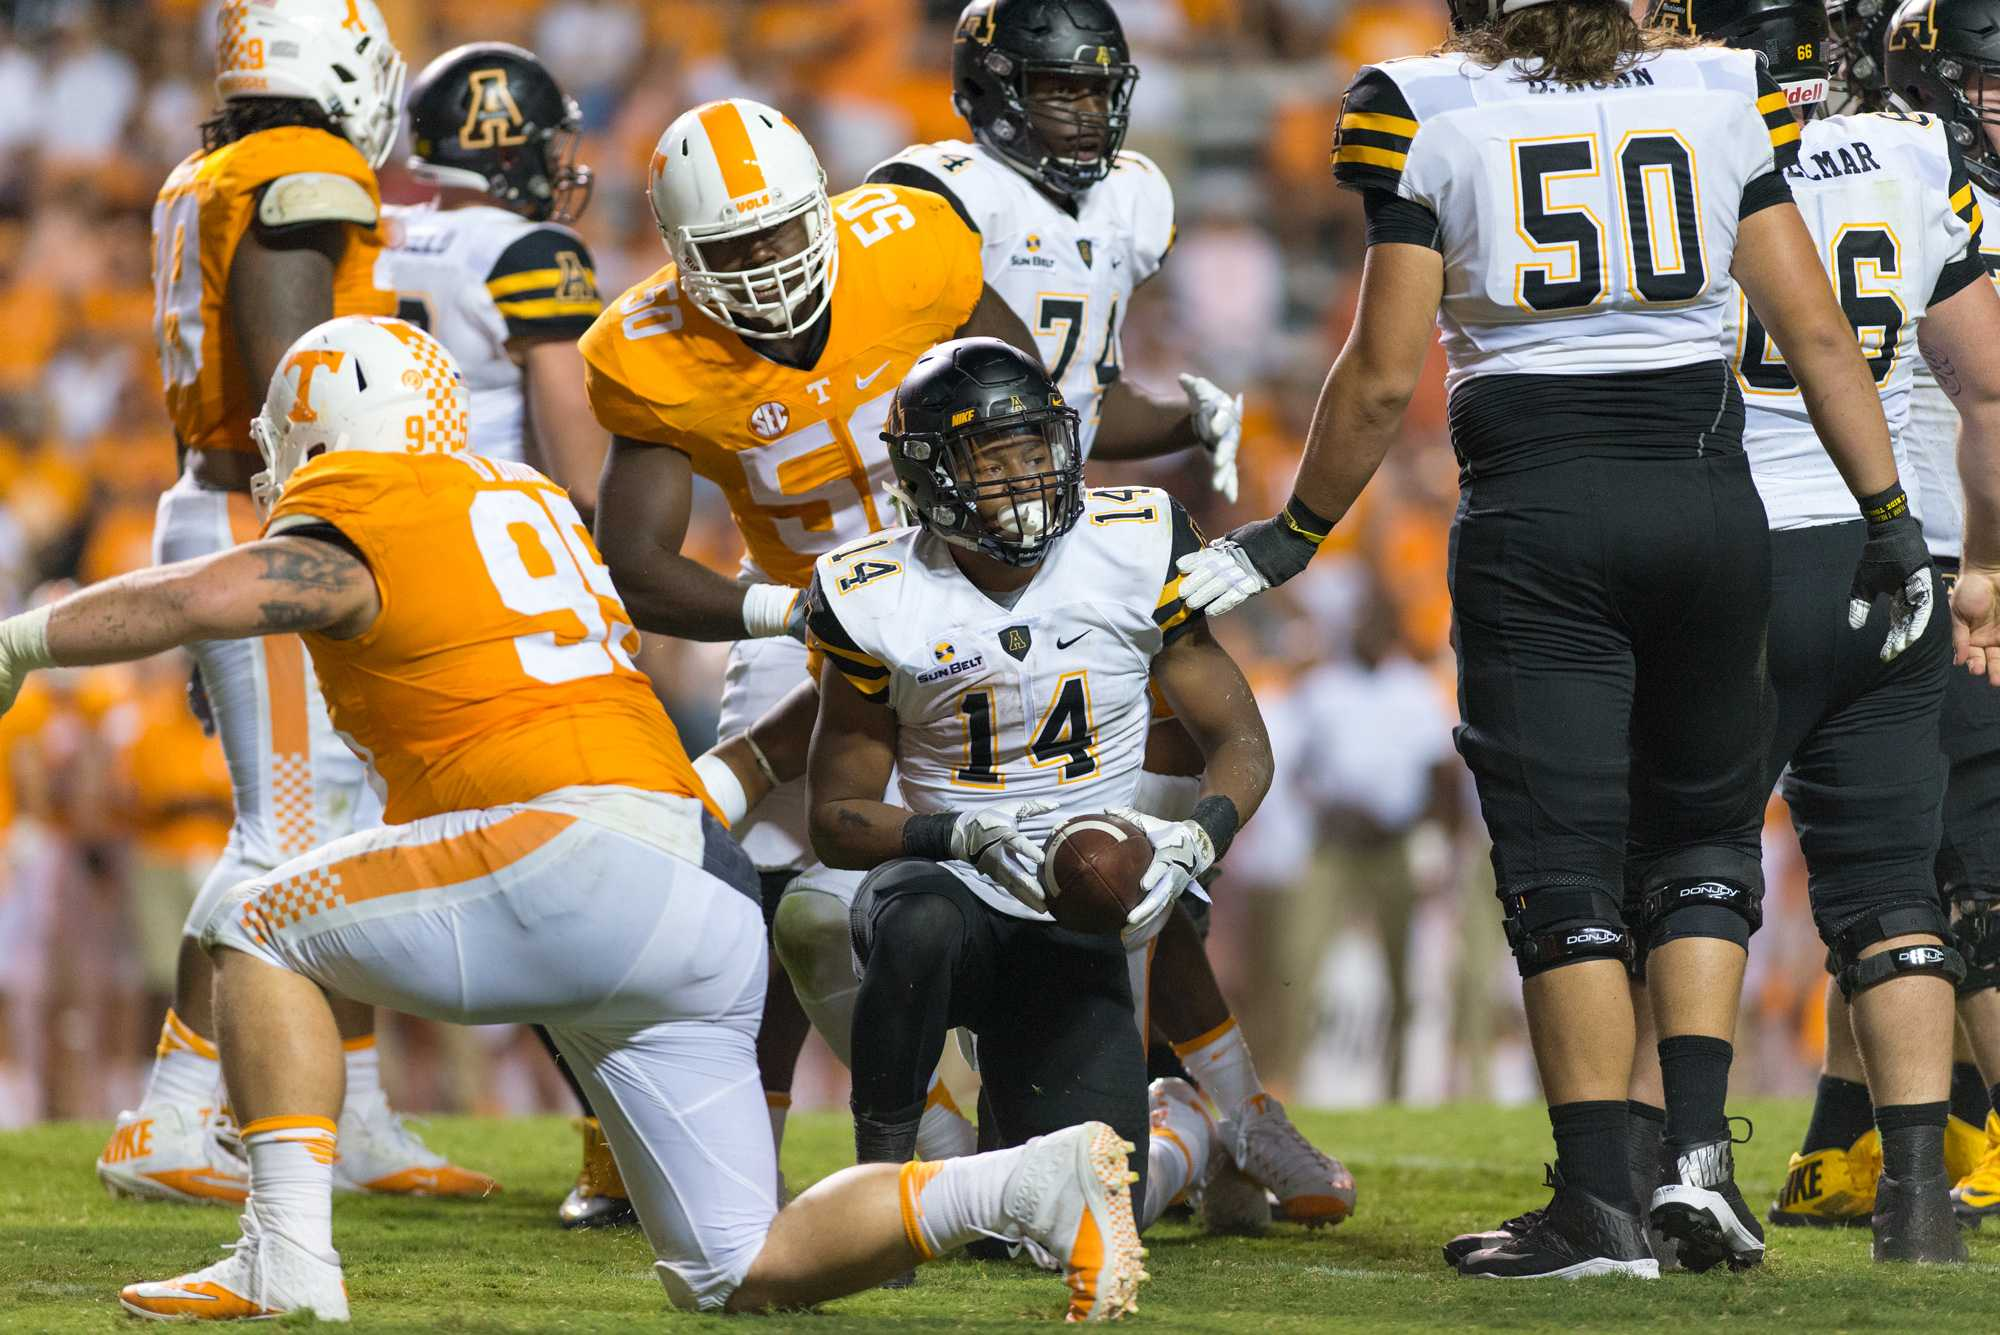 Cox+stands+up+after+running+with+a+carry+against+the+Vols.+Cox+finished+with+115+yards.+Photo+by+Dallas+Linger